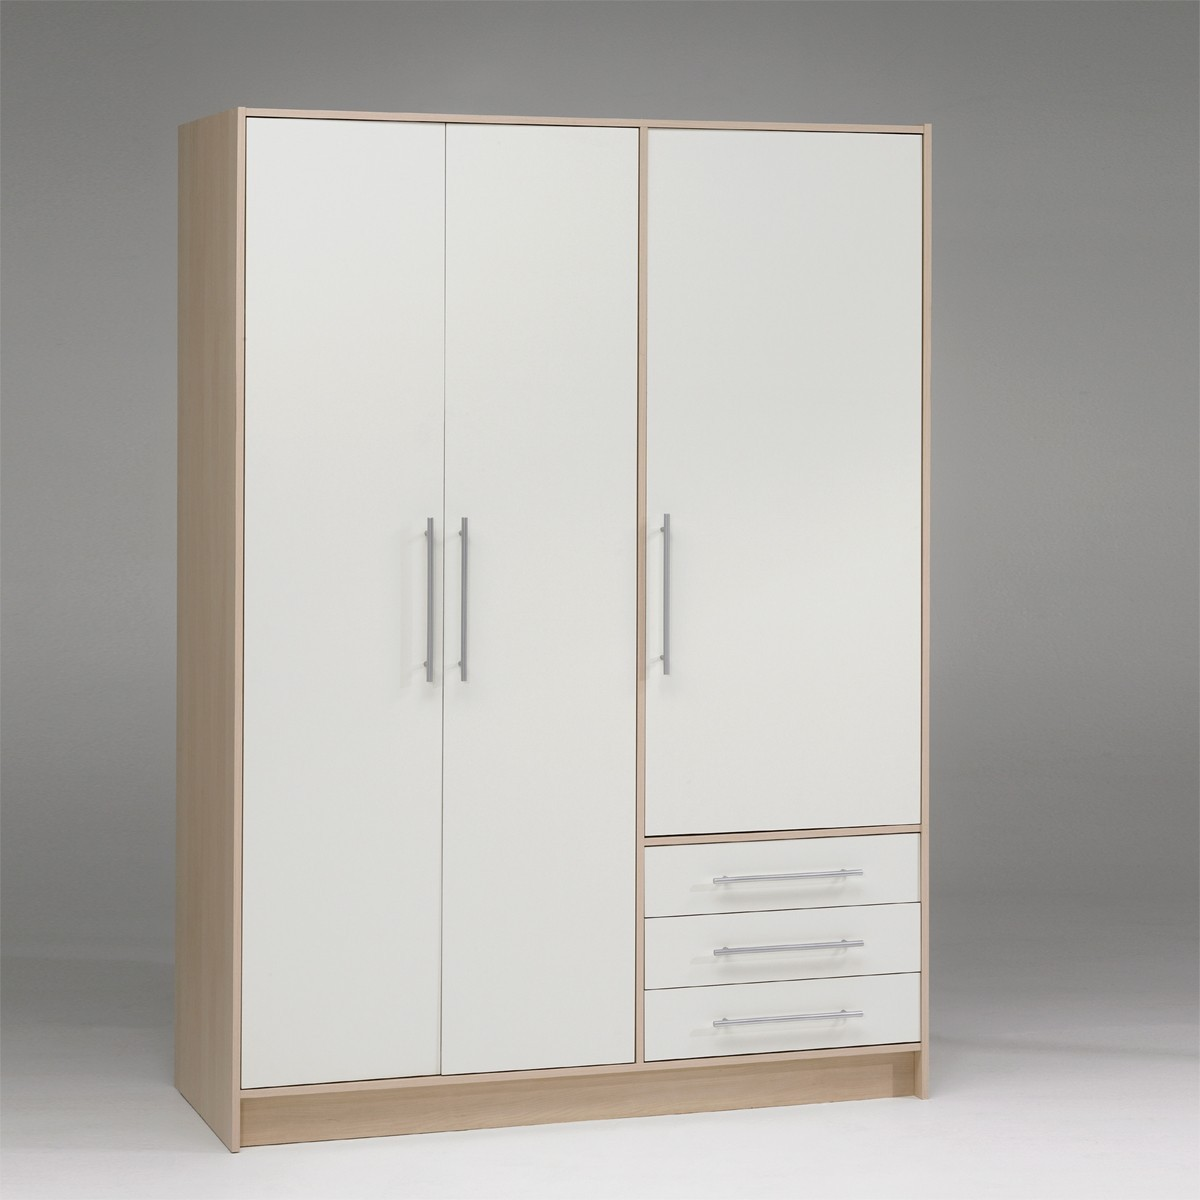 kleiderschrank schrank in wei ahorn hell nachbildung 145 cm breit ebay. Black Bedroom Furniture Sets. Home Design Ideas